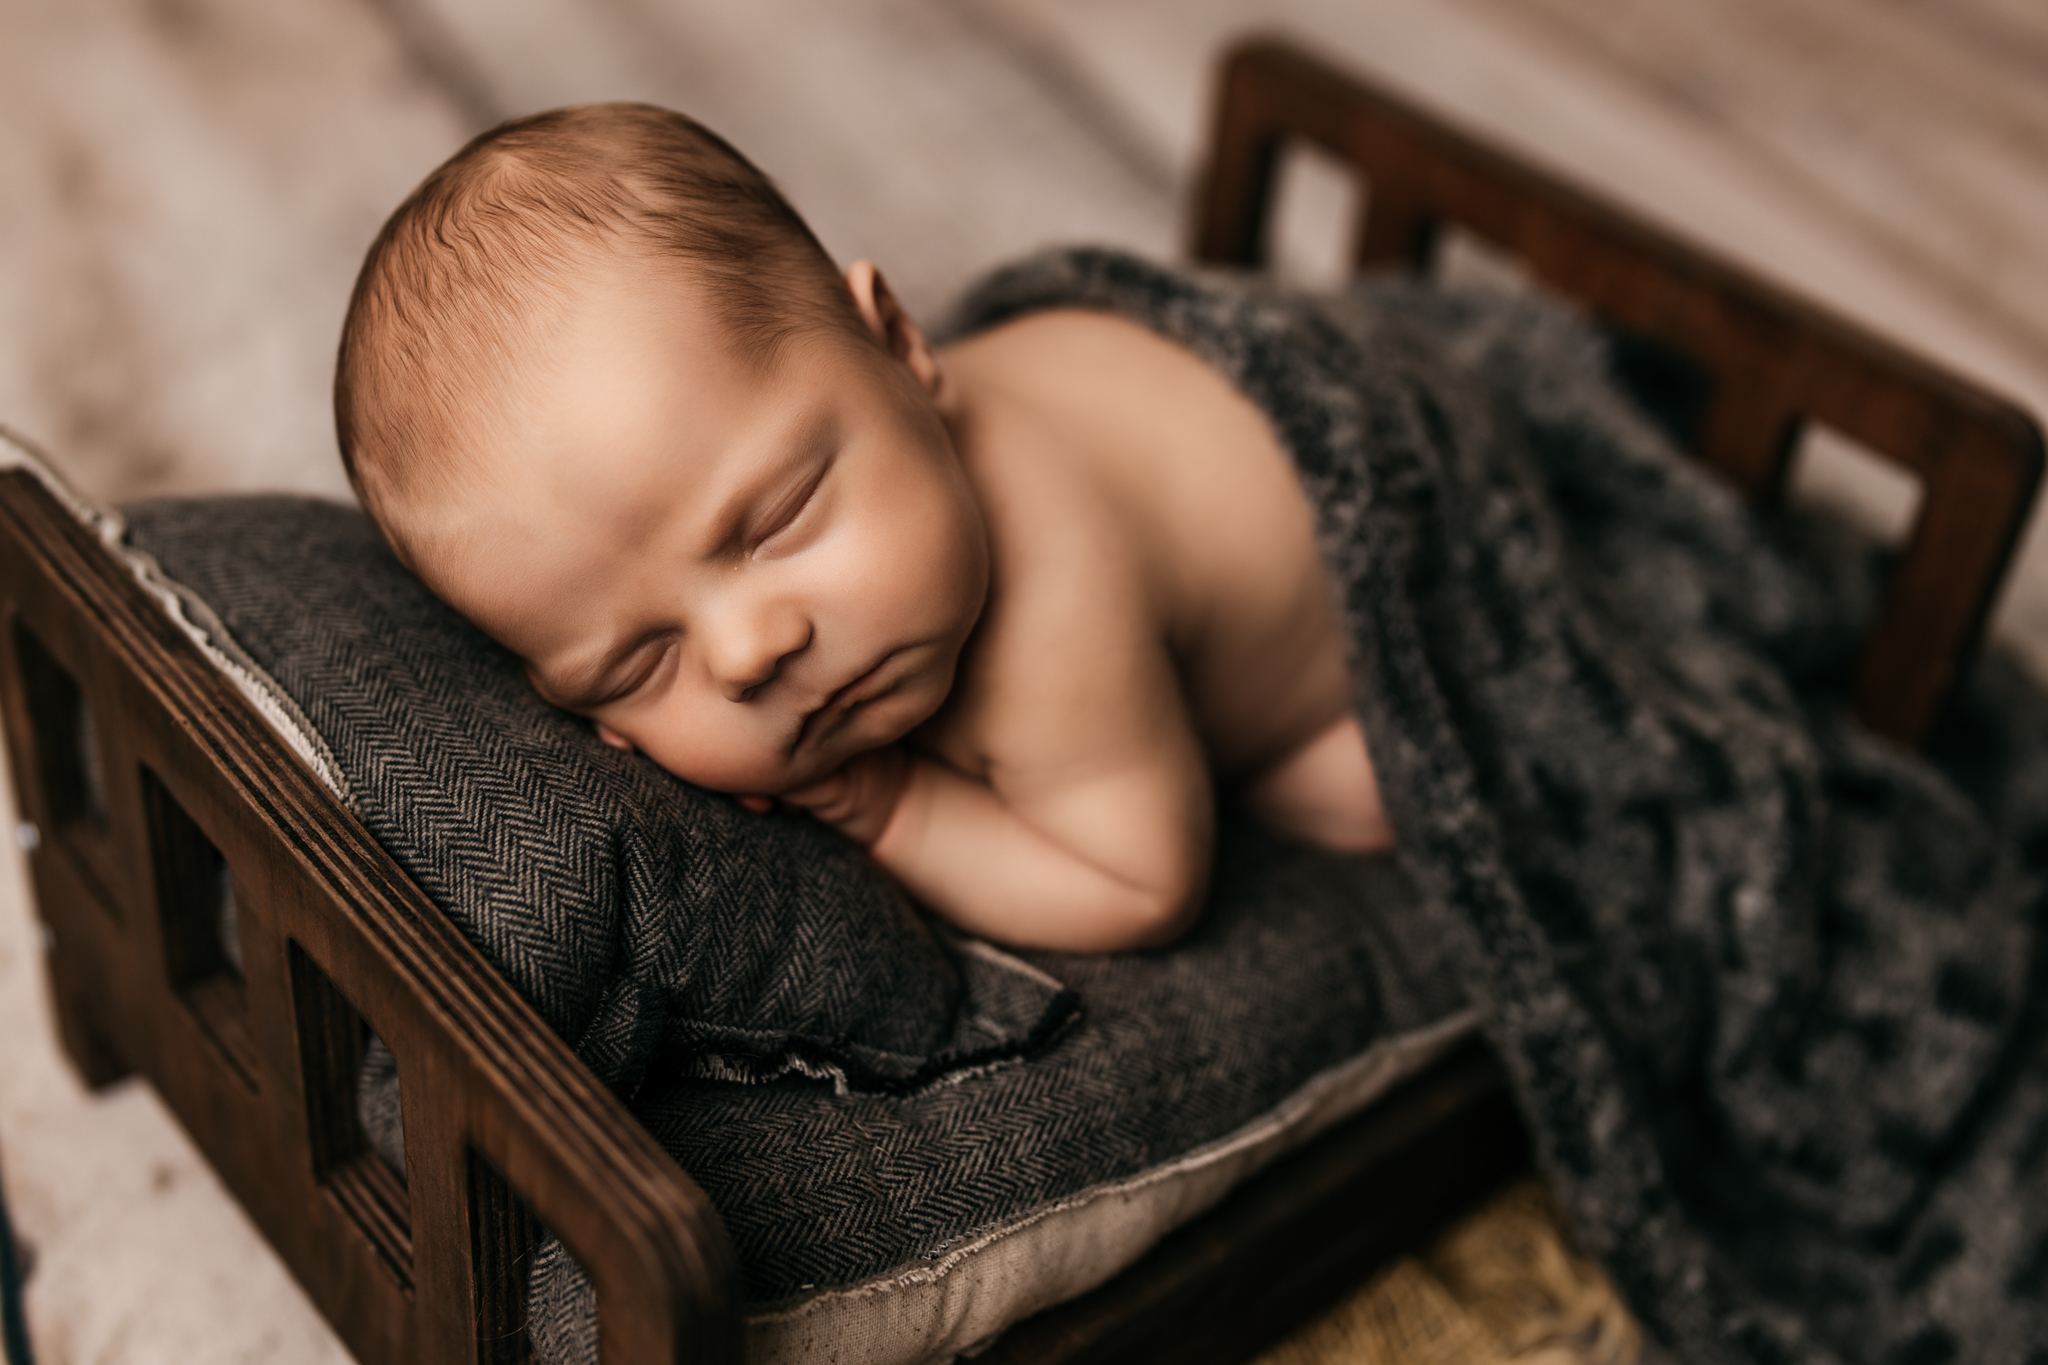 Baby laying on baby bed curled up with head on pillow